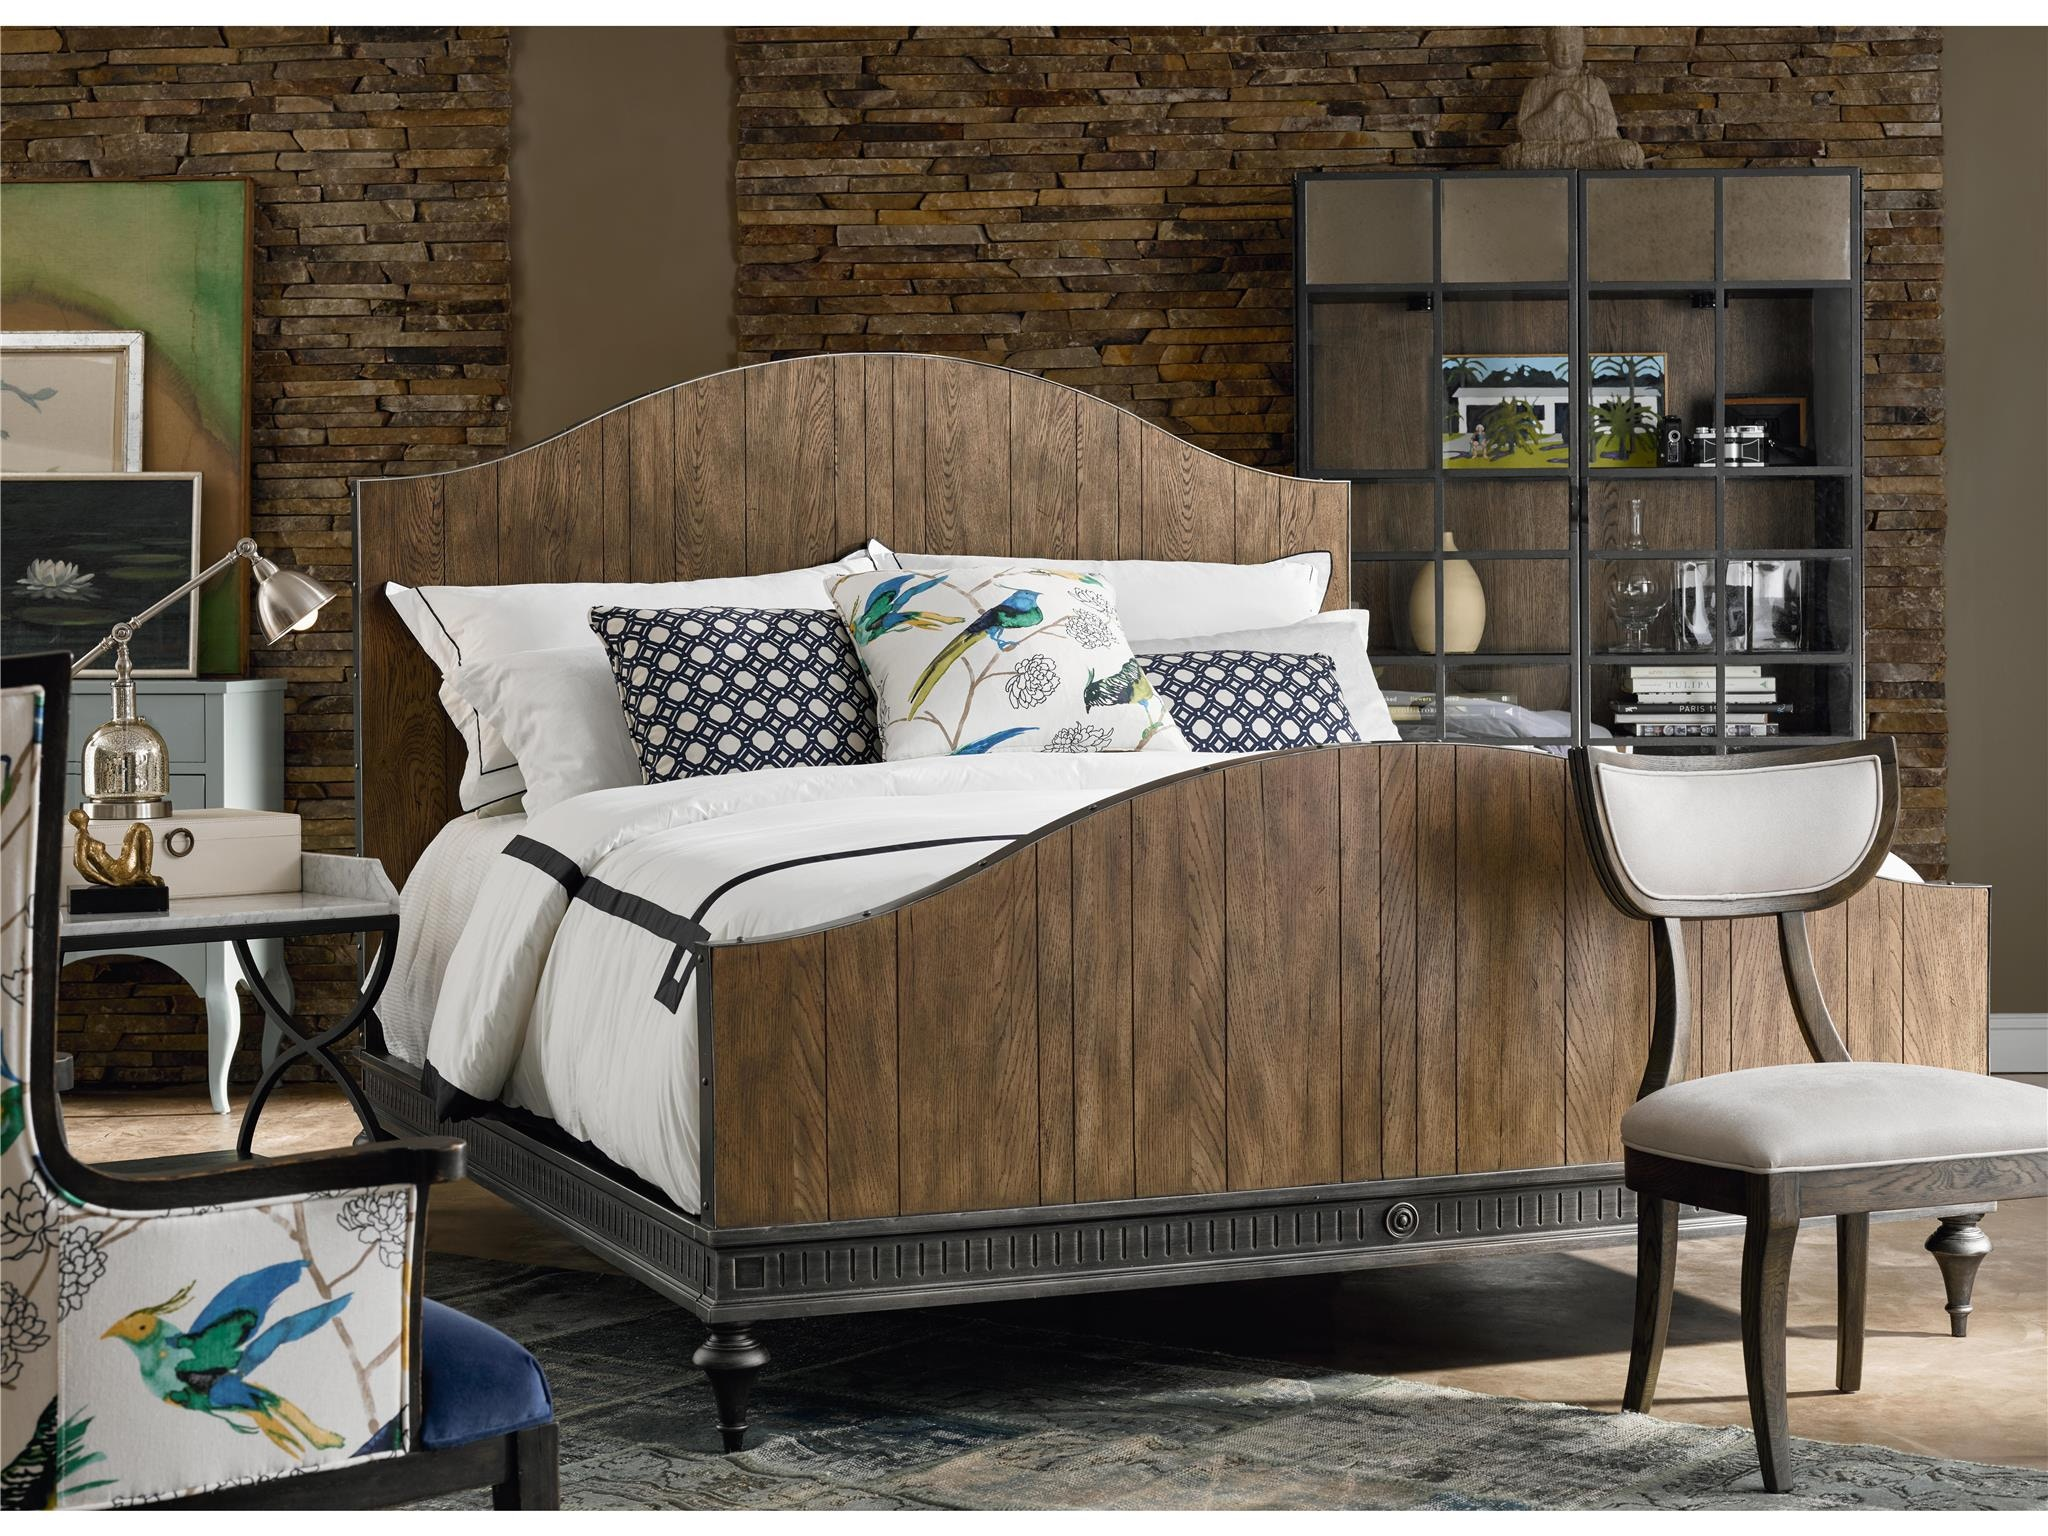 Good Fine Furniture Design Bedroom Carson California King Bed 1580 261/262/263   Meg  Brown Home Furnishings   Advance, Winston Salem, Greensboro And Lexington,  ...